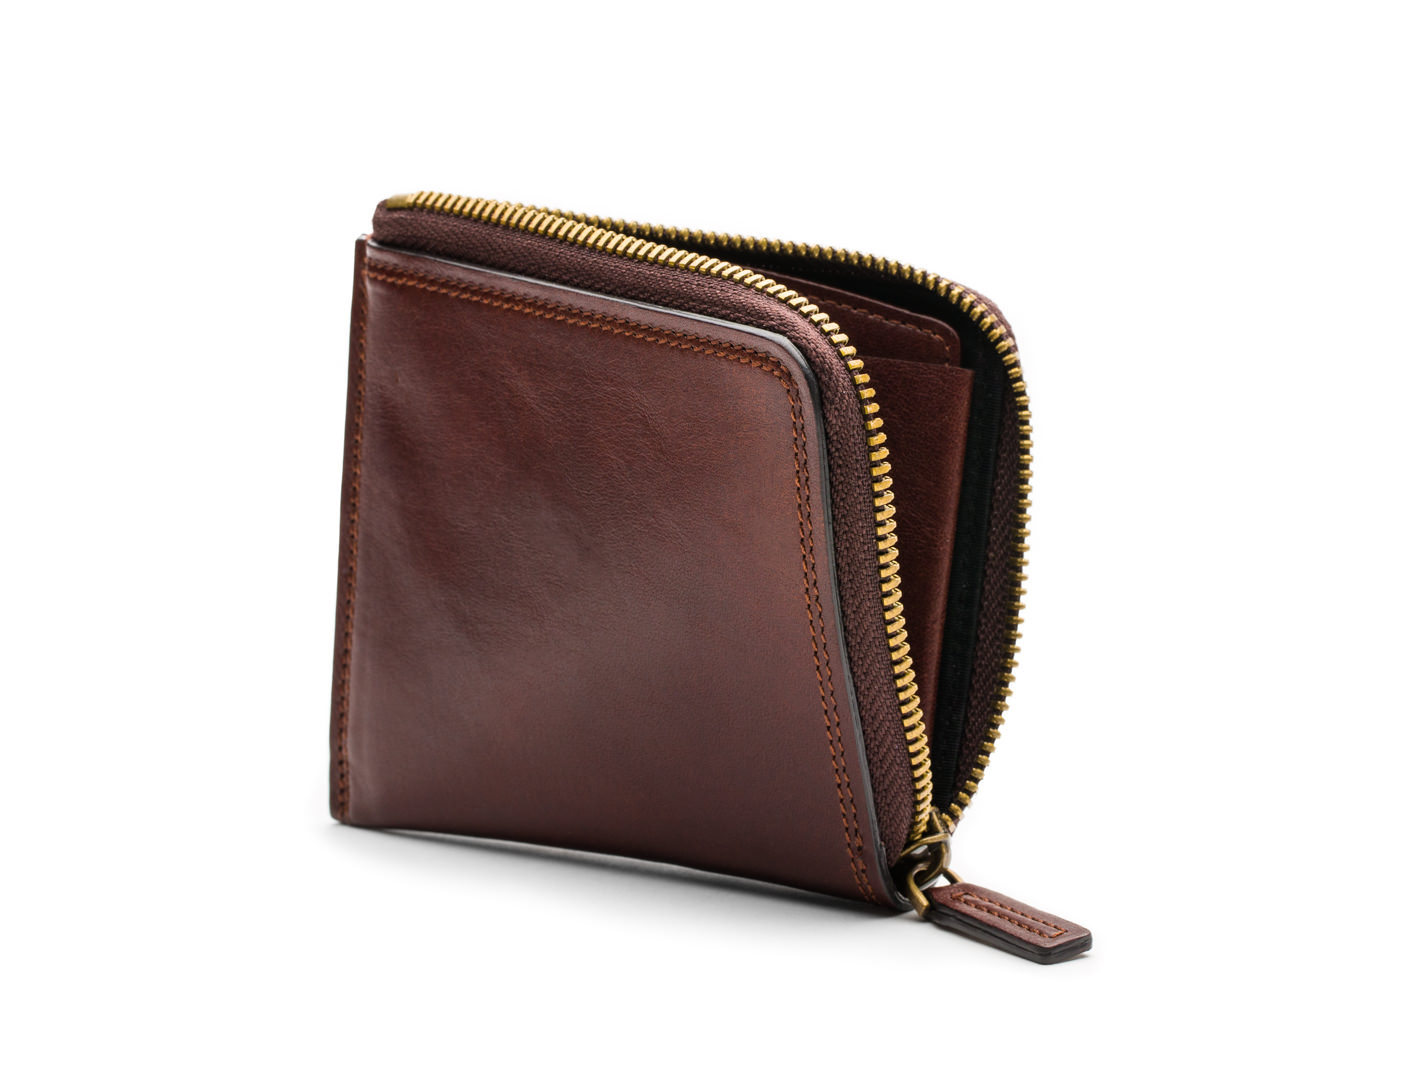 Euro Zip Wallet-218 Dark Brown - 218 Dark Brown